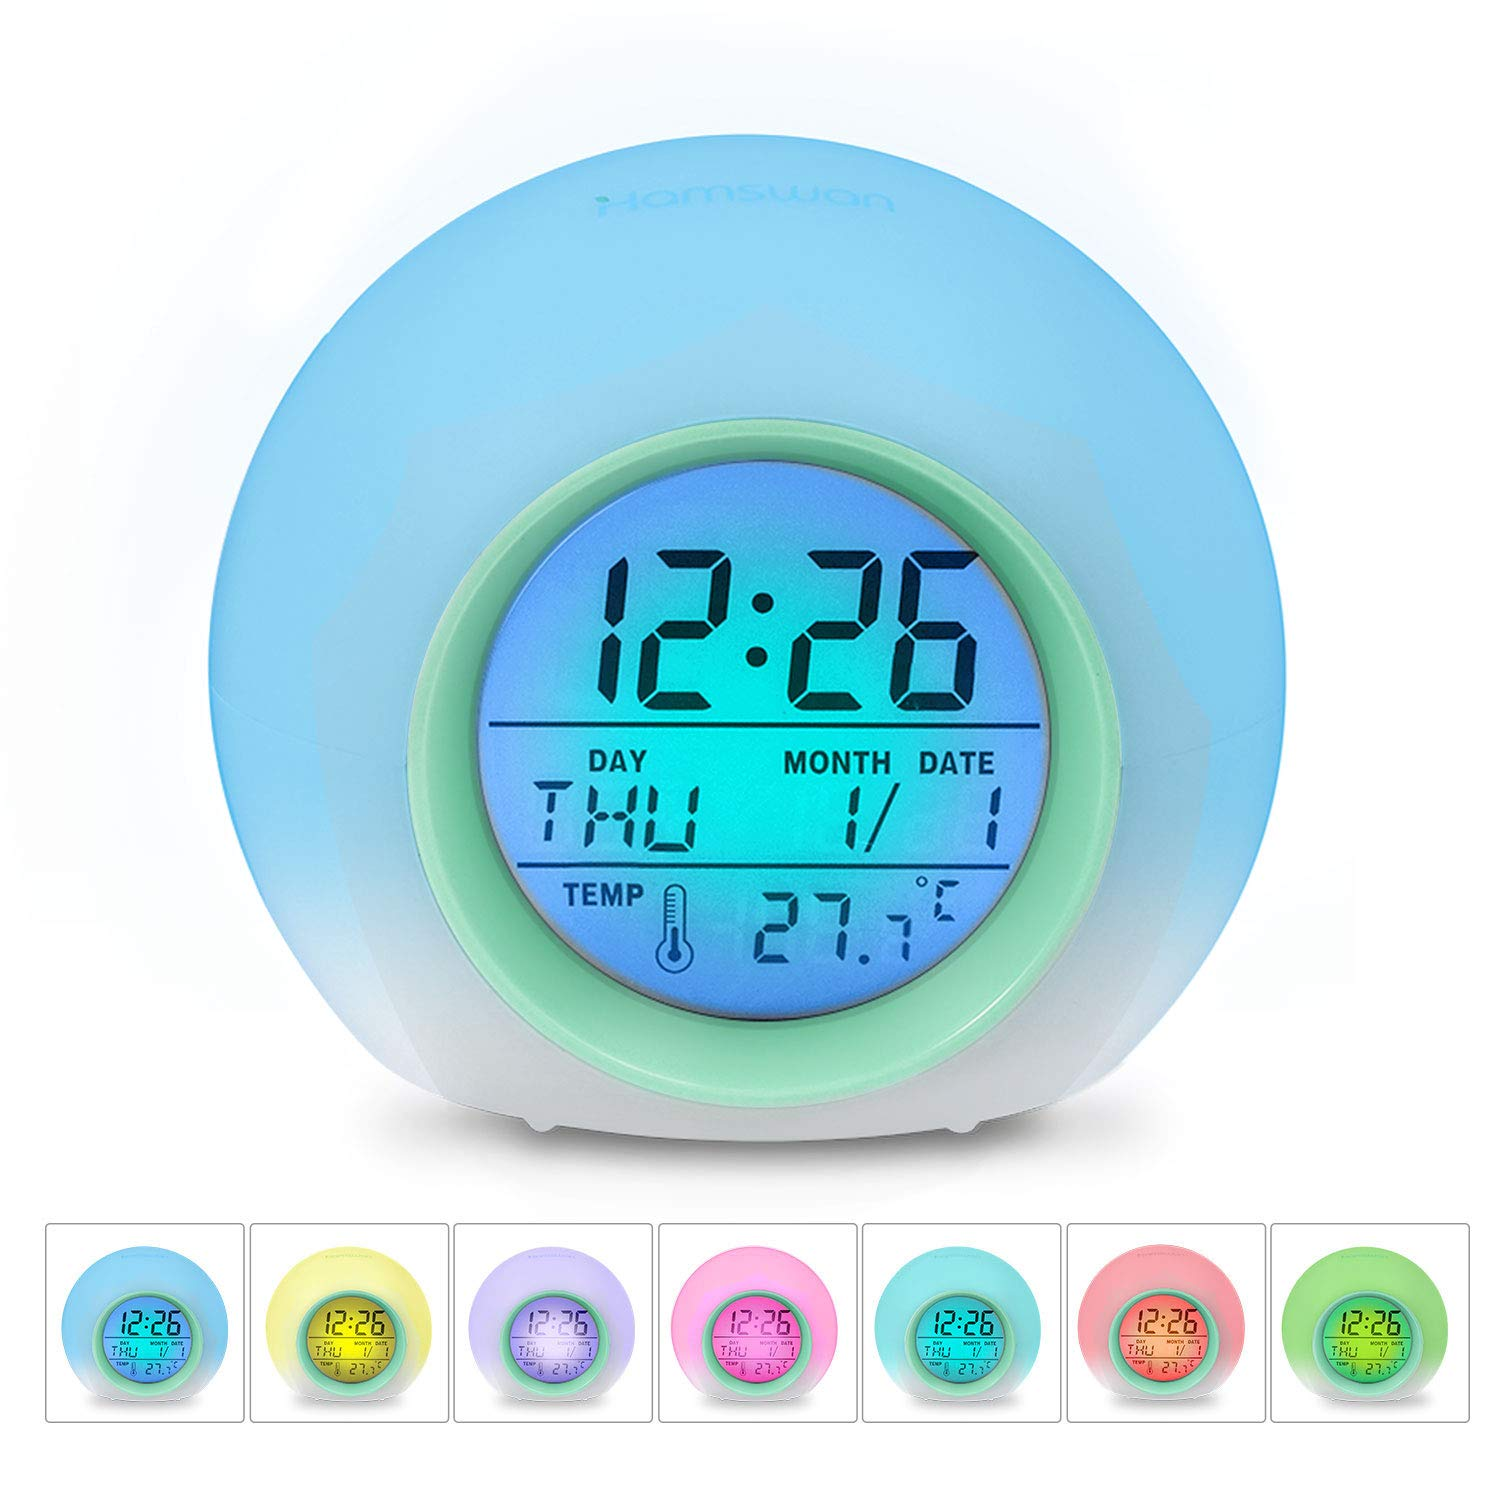 HAMSWAN Kids Alarm Clock - Wake up Light Digital Clock with 7 Colors Changing, Touch Control and Snooze Function for Bedrooms